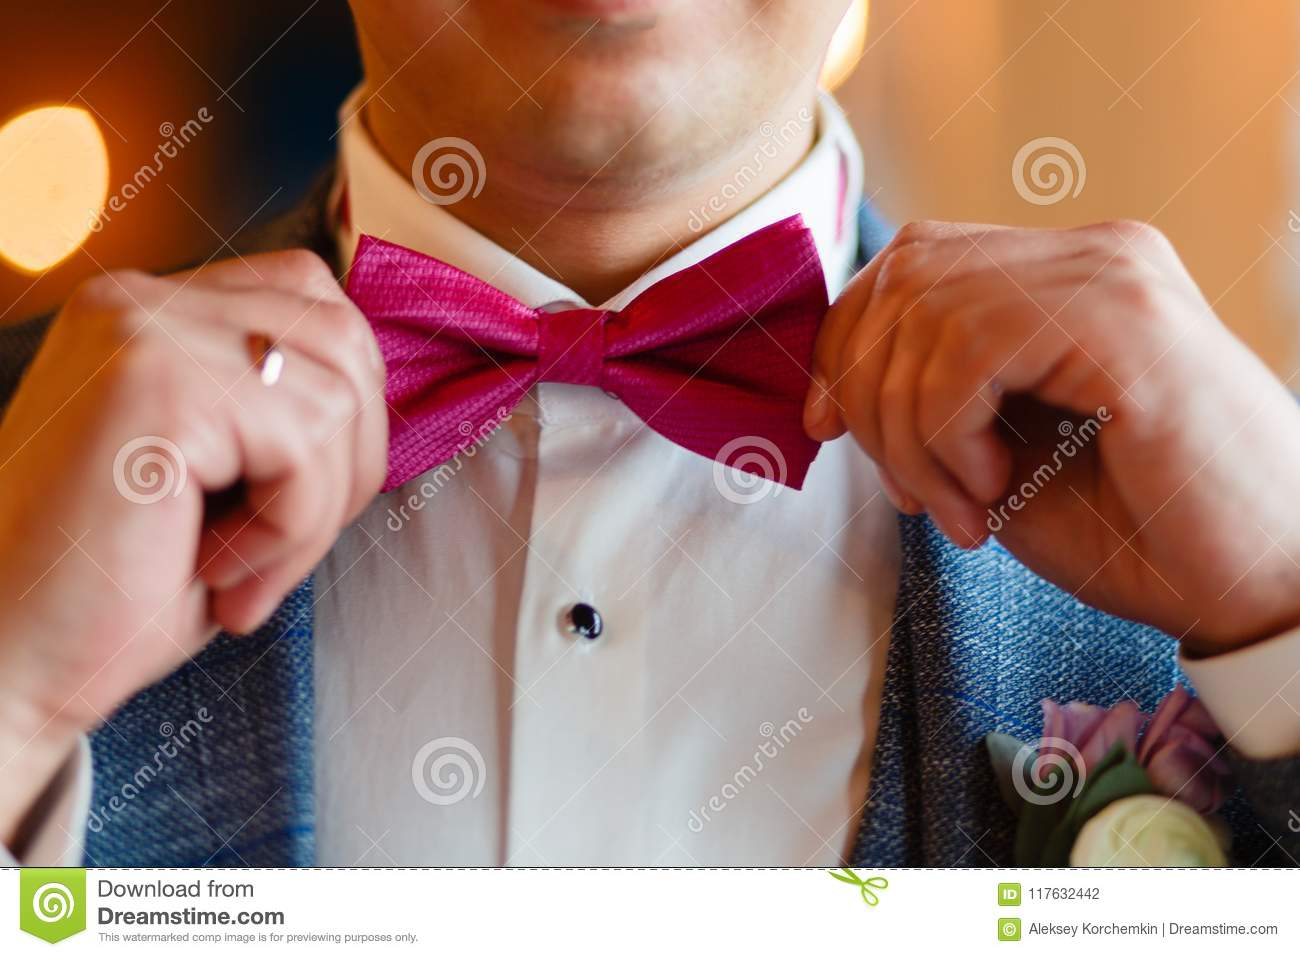 A man in a stylish suit corrects a pink butterfly. Closeup of a corporate man adjusting his fashionable pink tie. Business concept